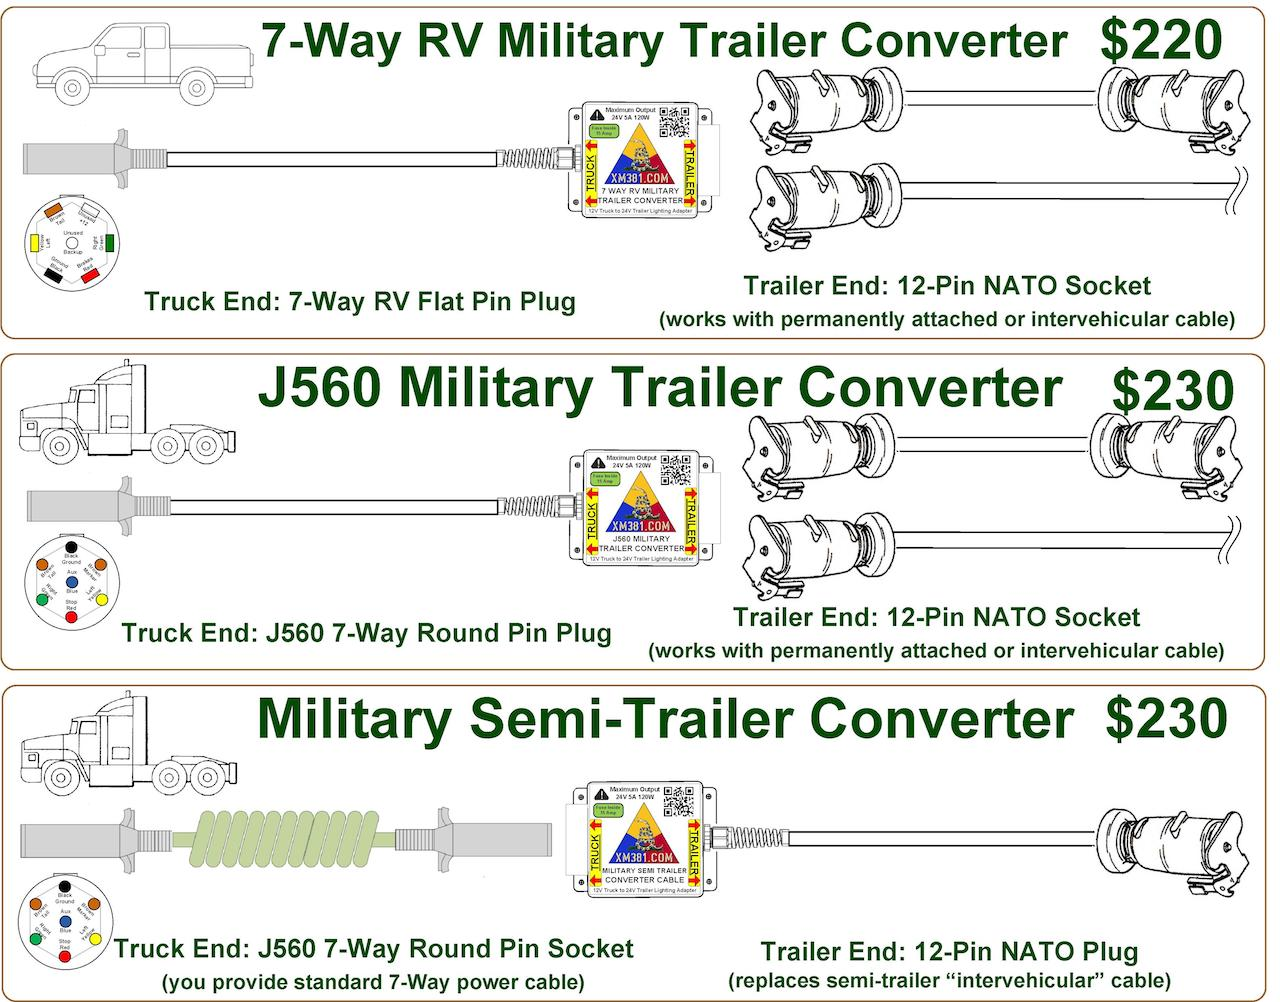 Military Trailer Light Wiring Diagram Libraries Tractor Xm381 12 Volt Civllian Truck To 24 Lightingcivi Product Matrix